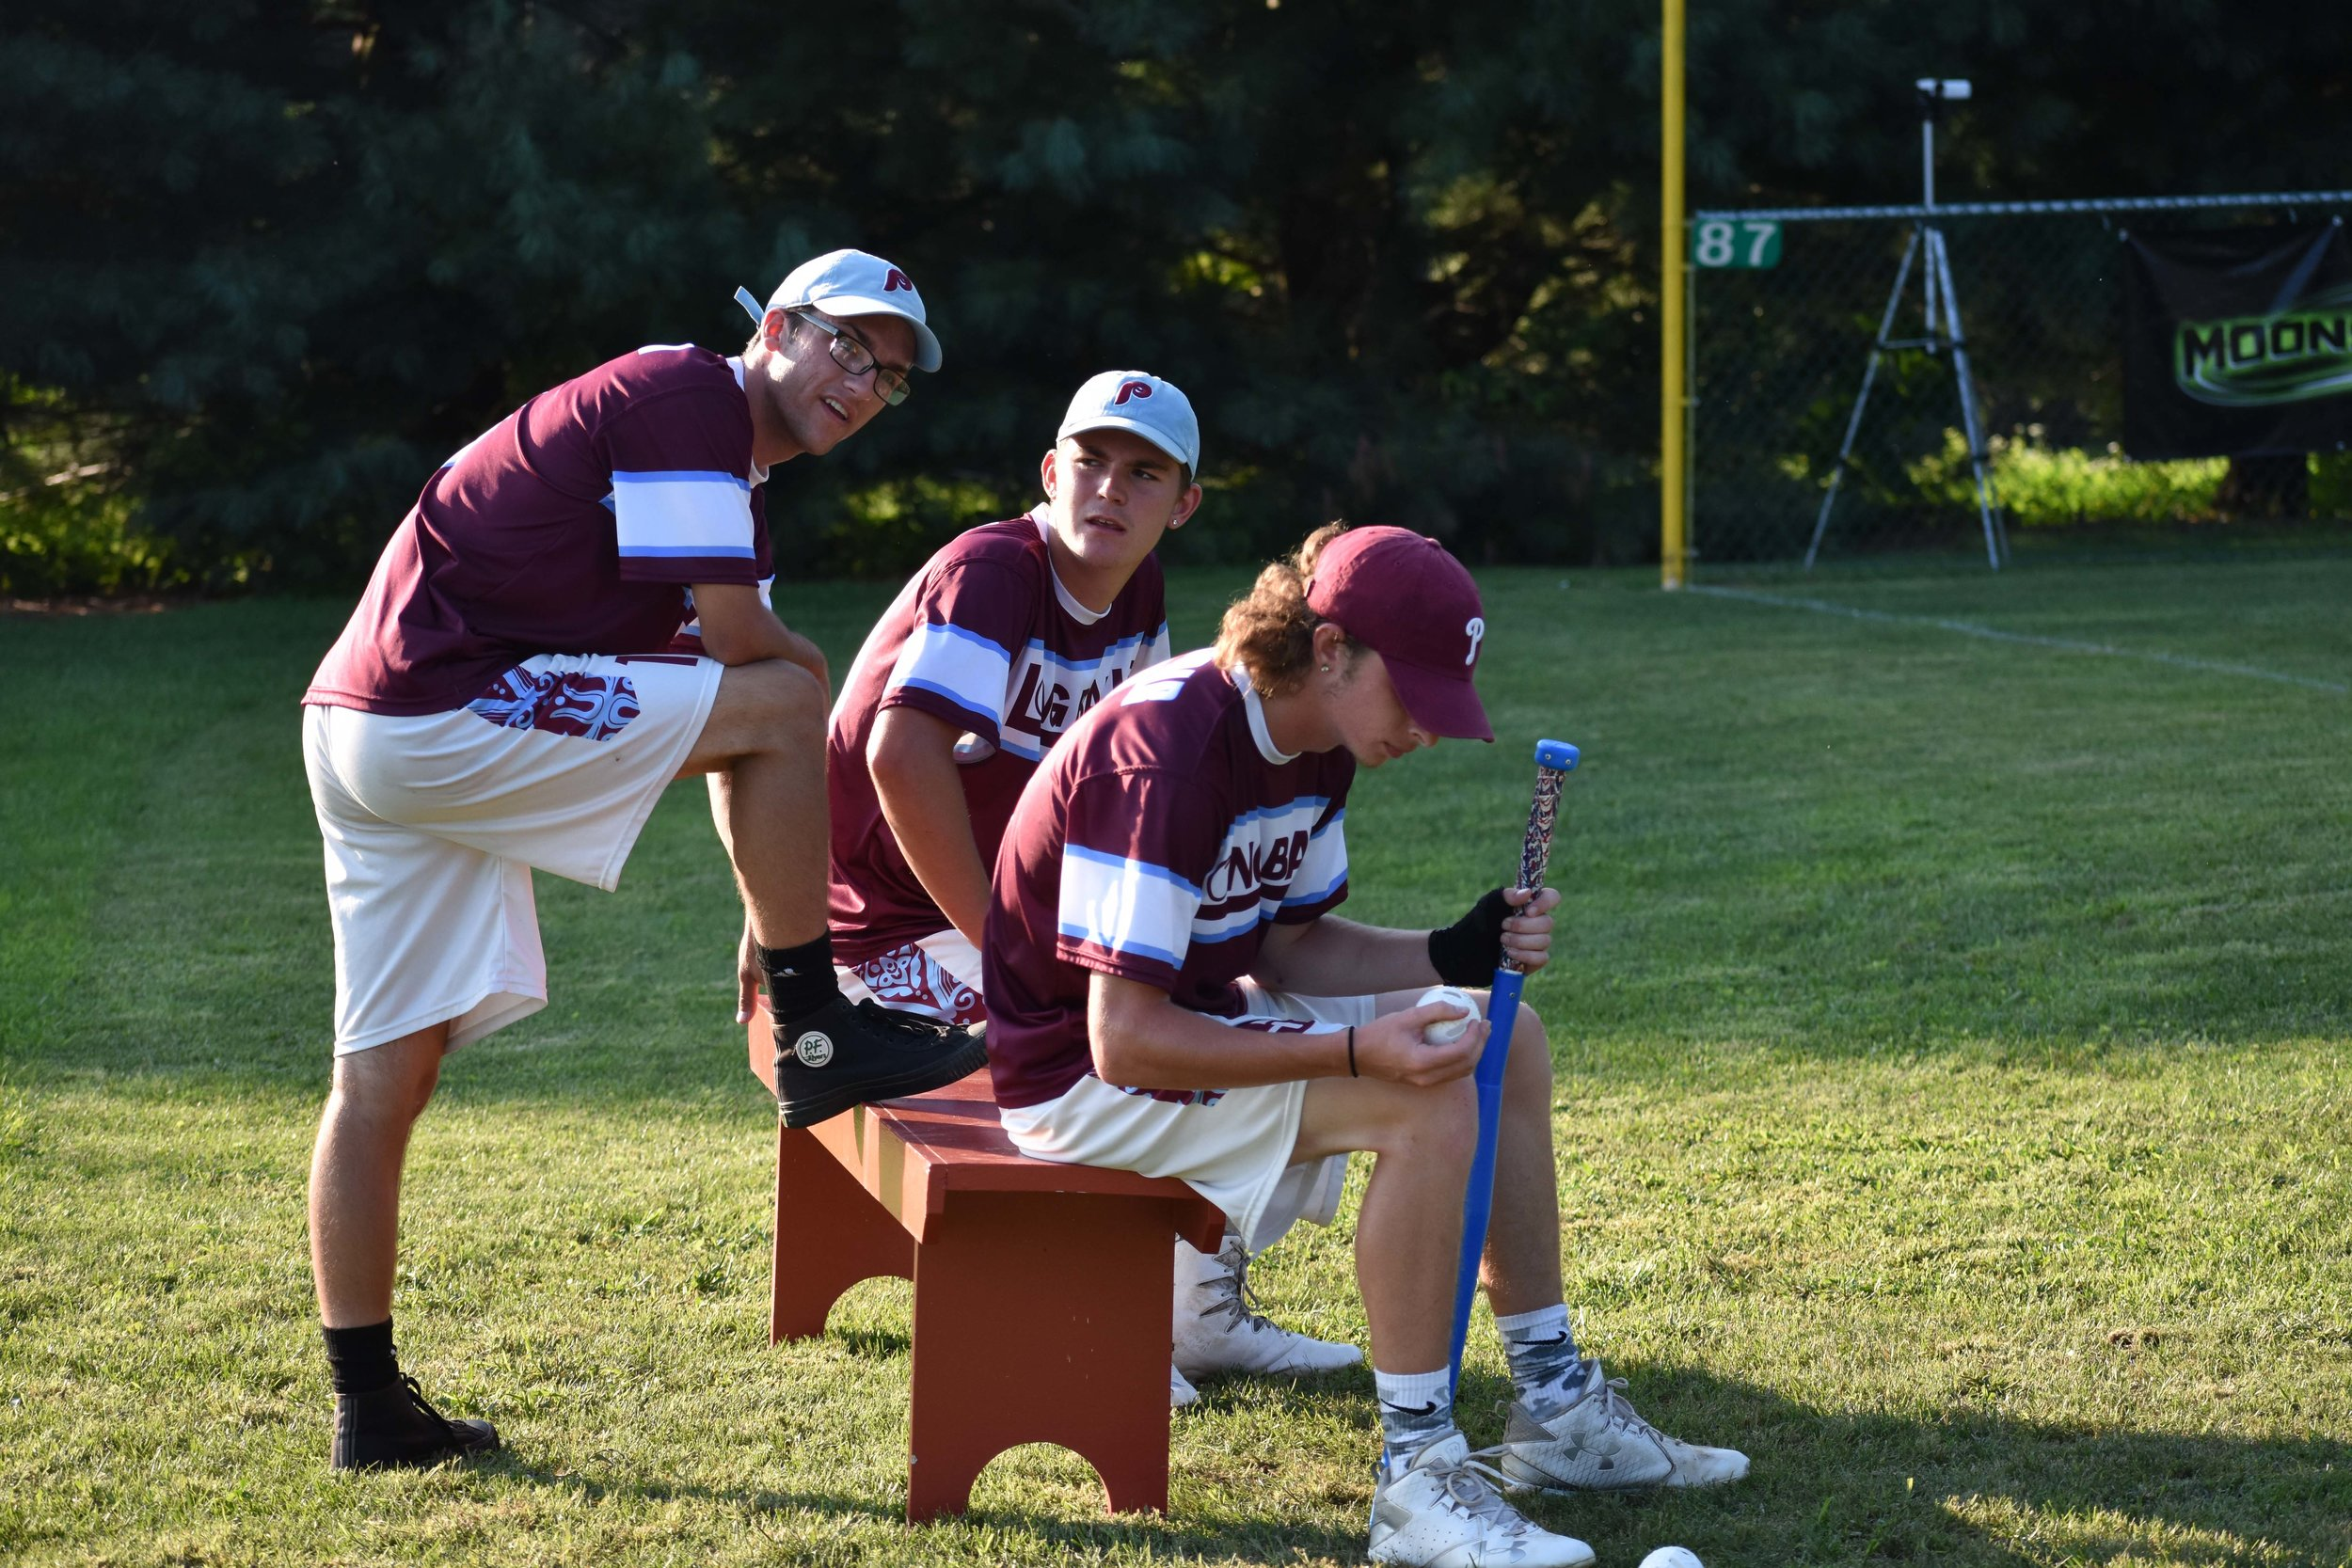 The Longballs' Colin Pollag, Dylan Harshaw, and Tyler Nachbar (left to right) discuss strategy during the tournament championship.